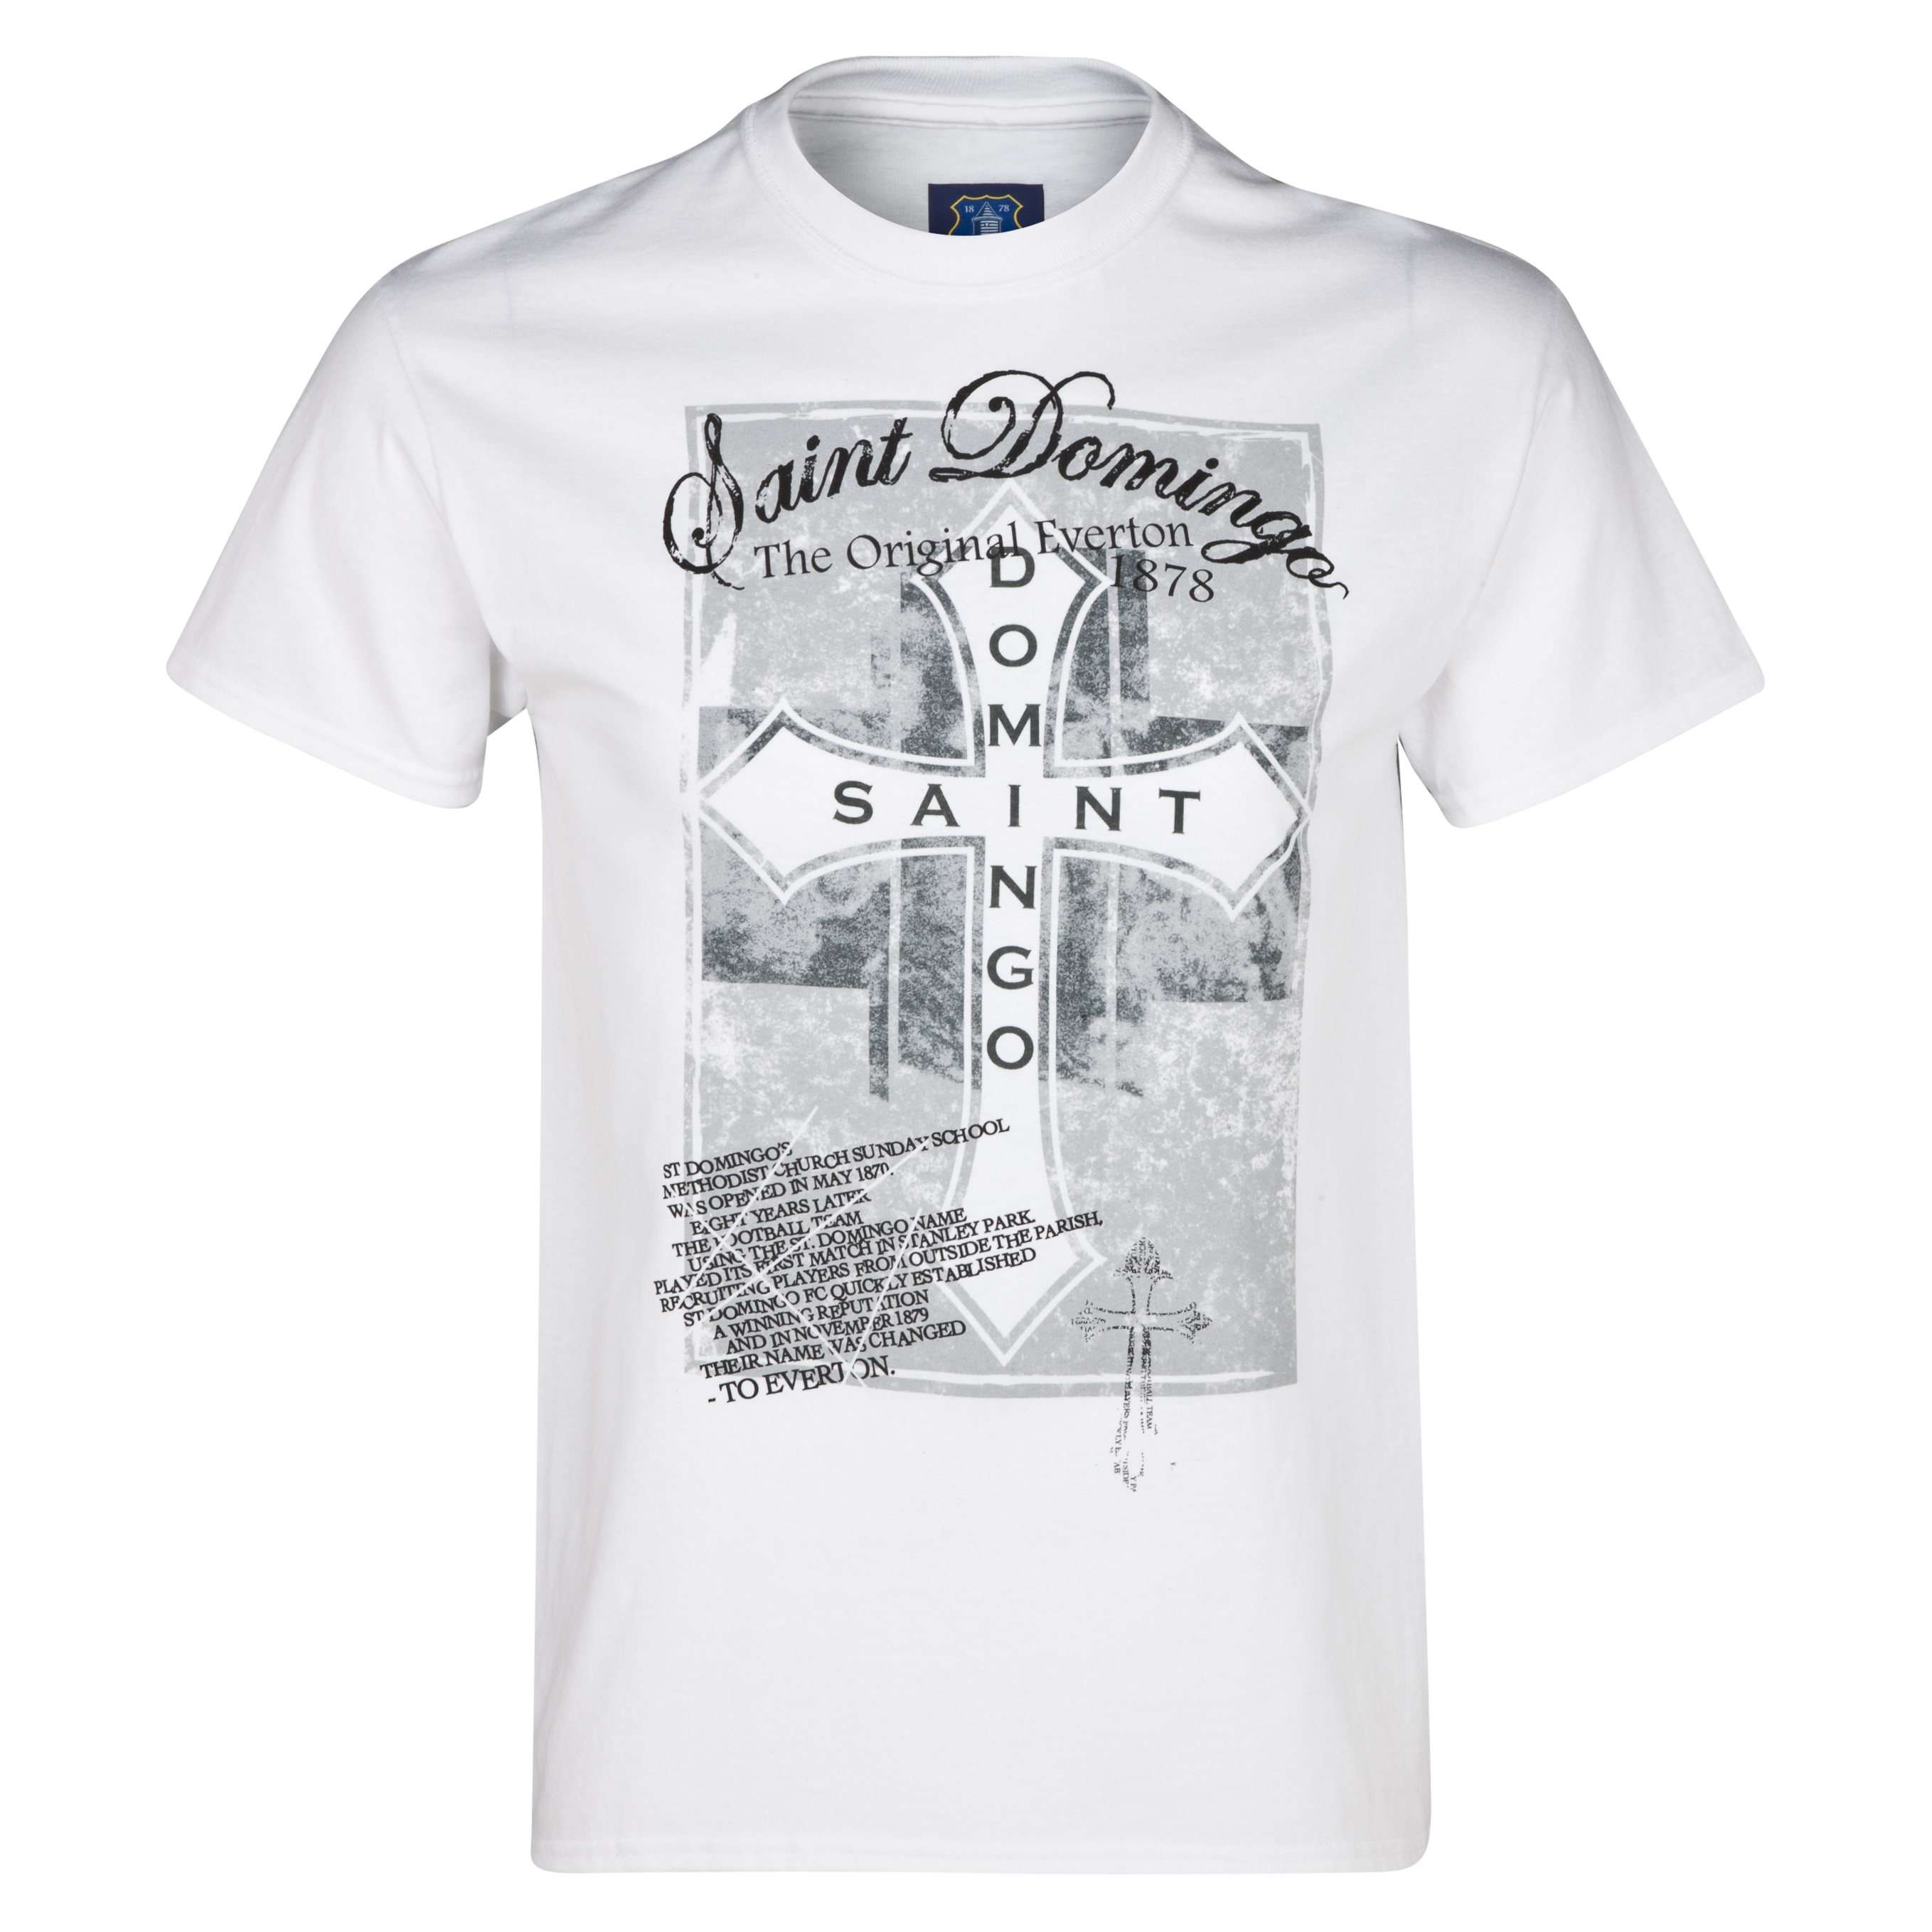 Everton Saint Domingo T-Shirt White